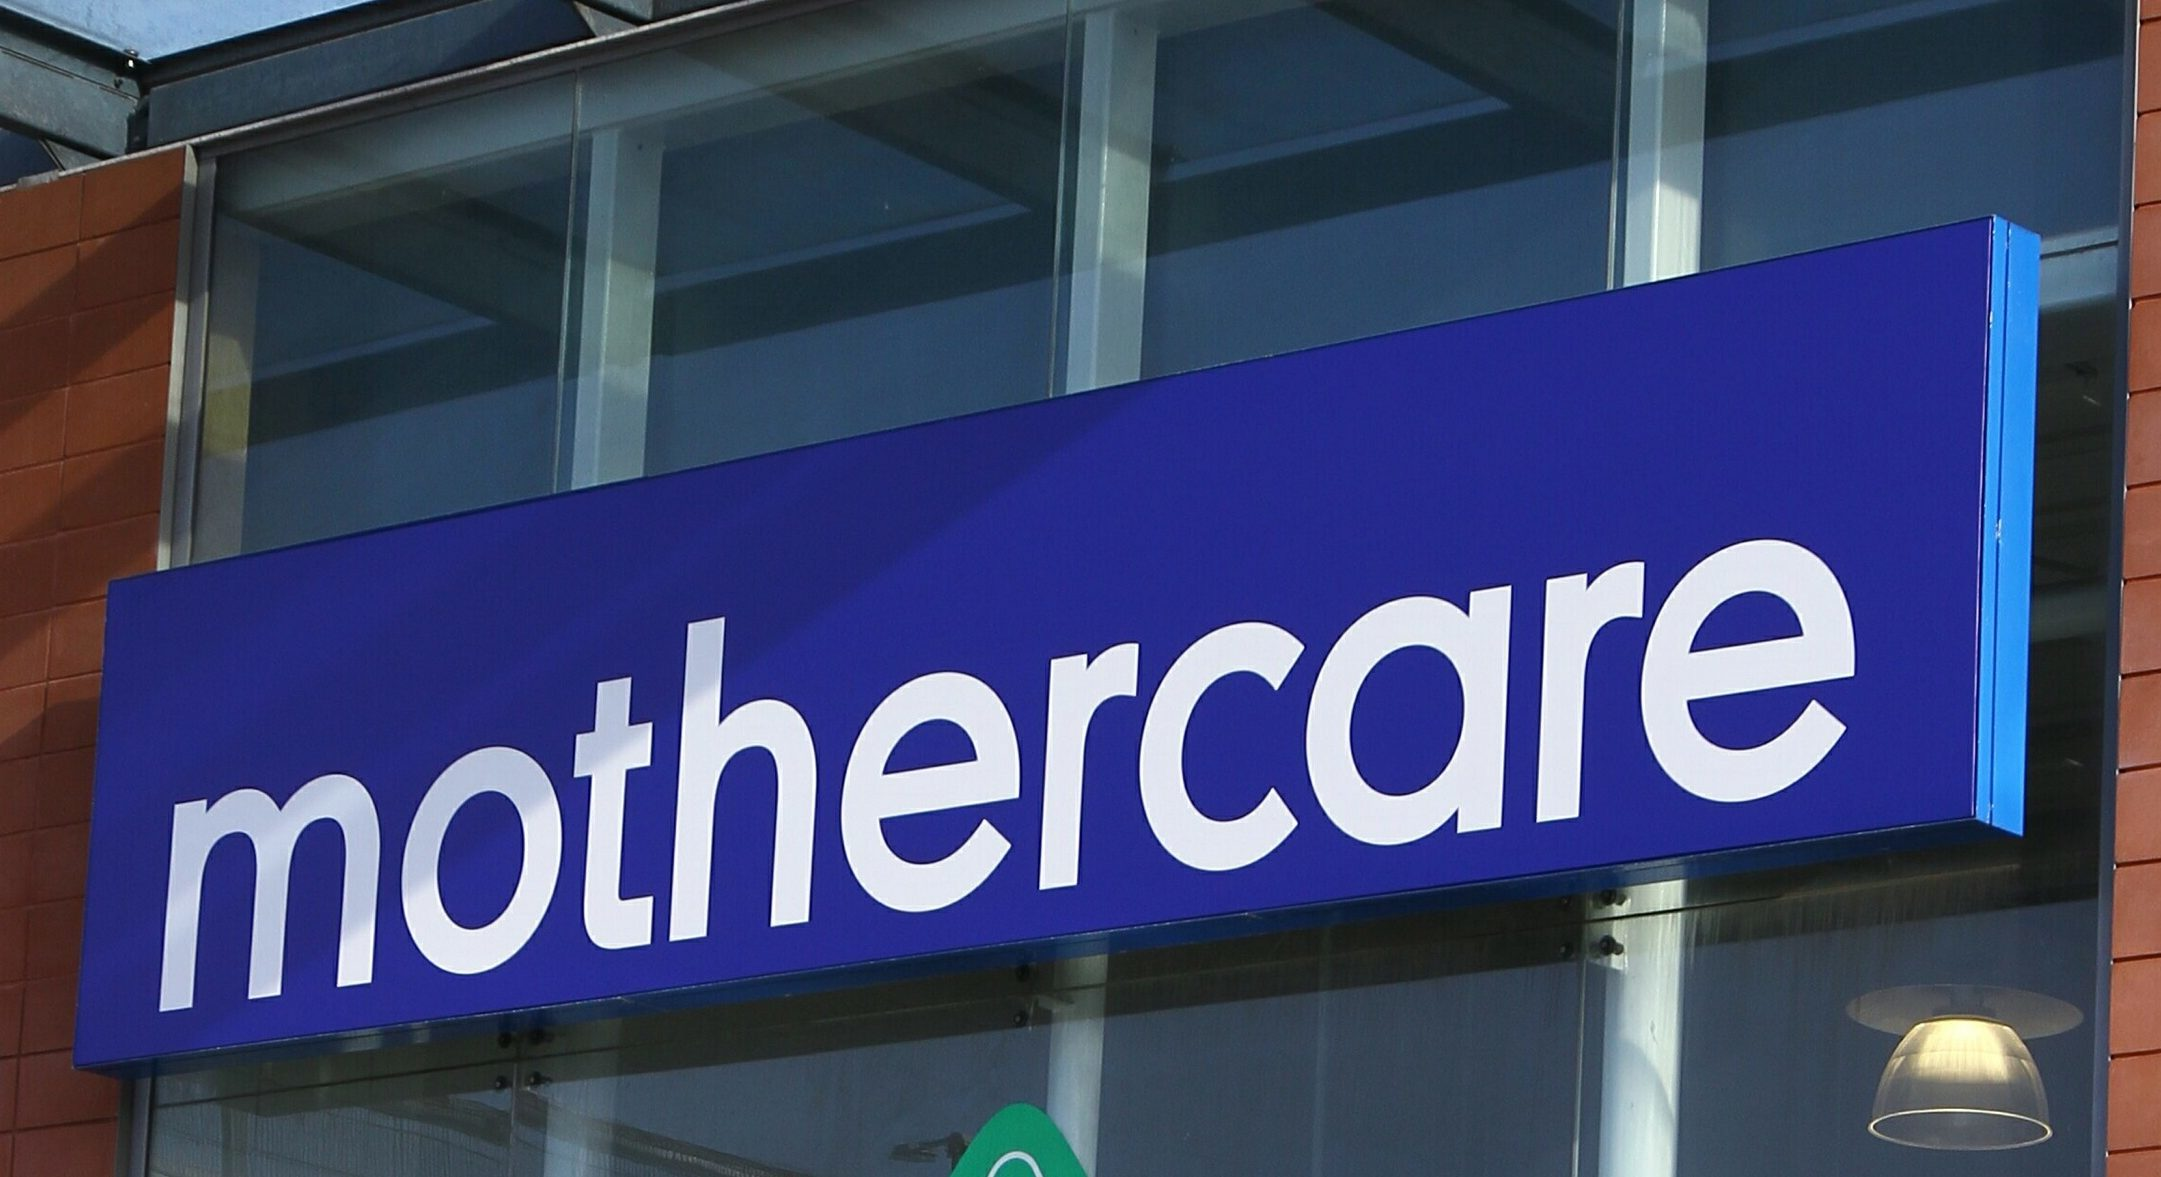 A Mothercare store in Dundee (Dougie Nicholson / DC Thomson)